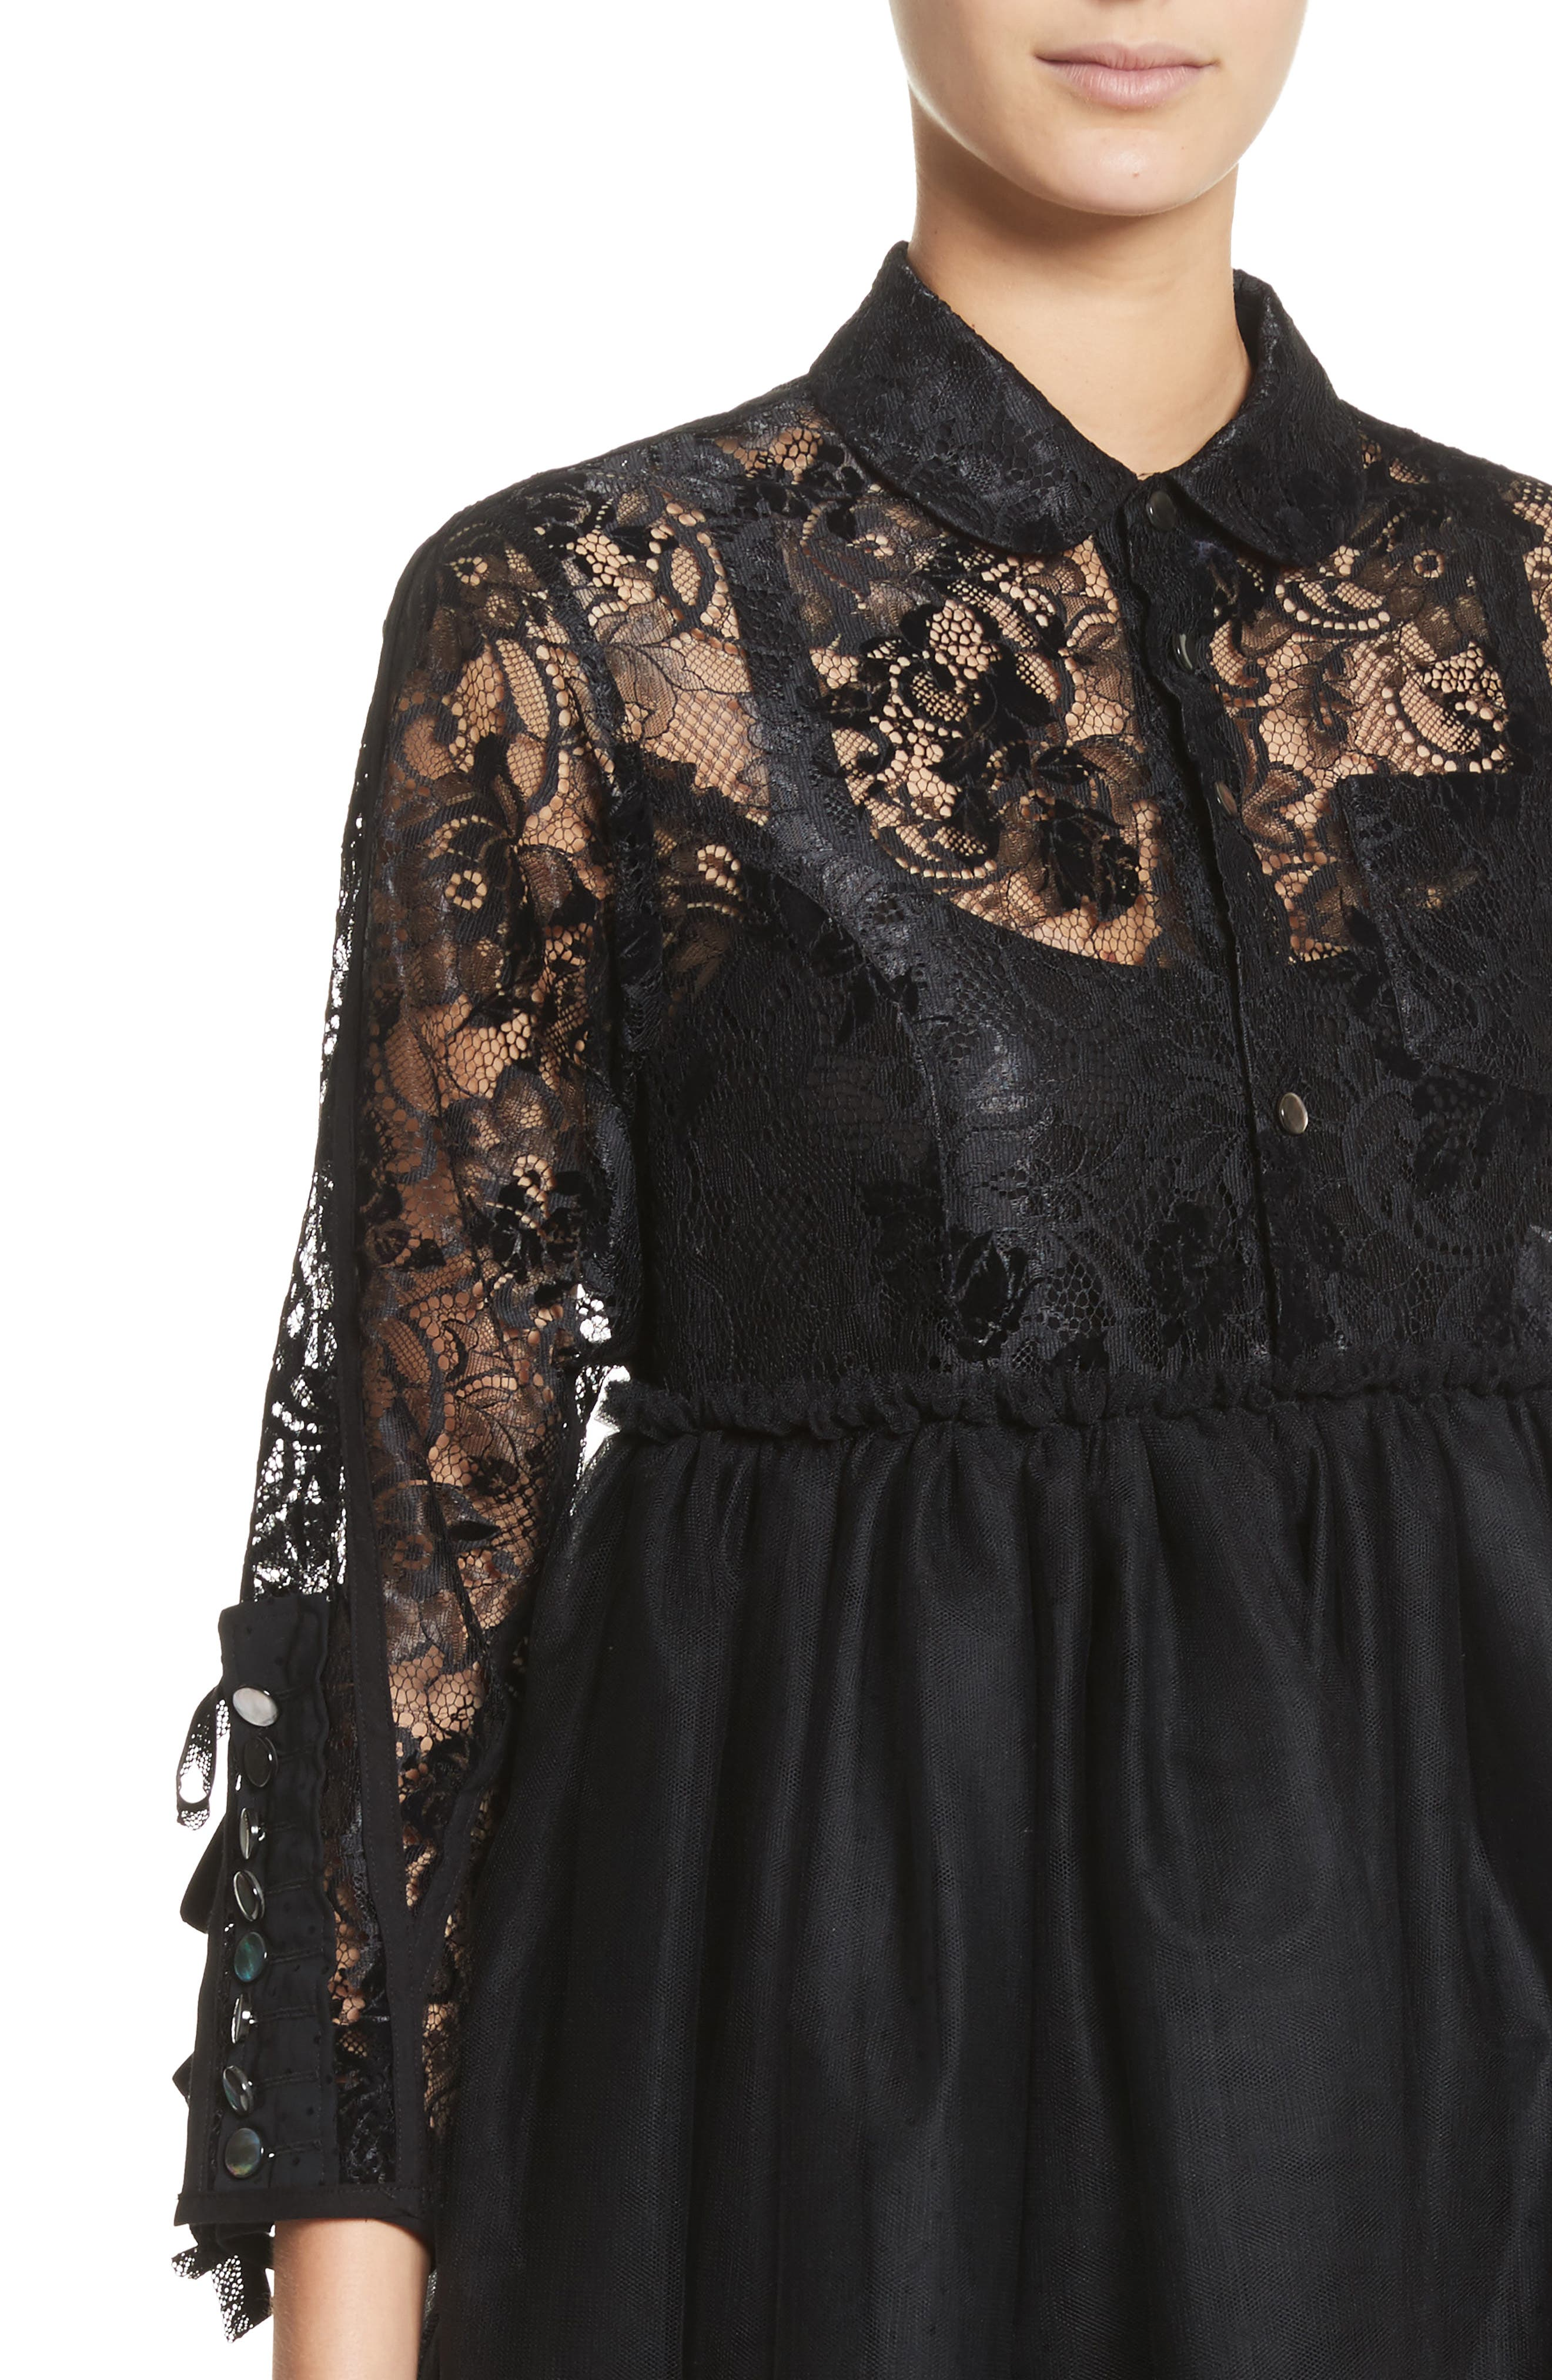 Lace Bodice Shirtdress with Tulle Skirt,                             Alternate thumbnail 4, color,                             Blk/Blk X Blk